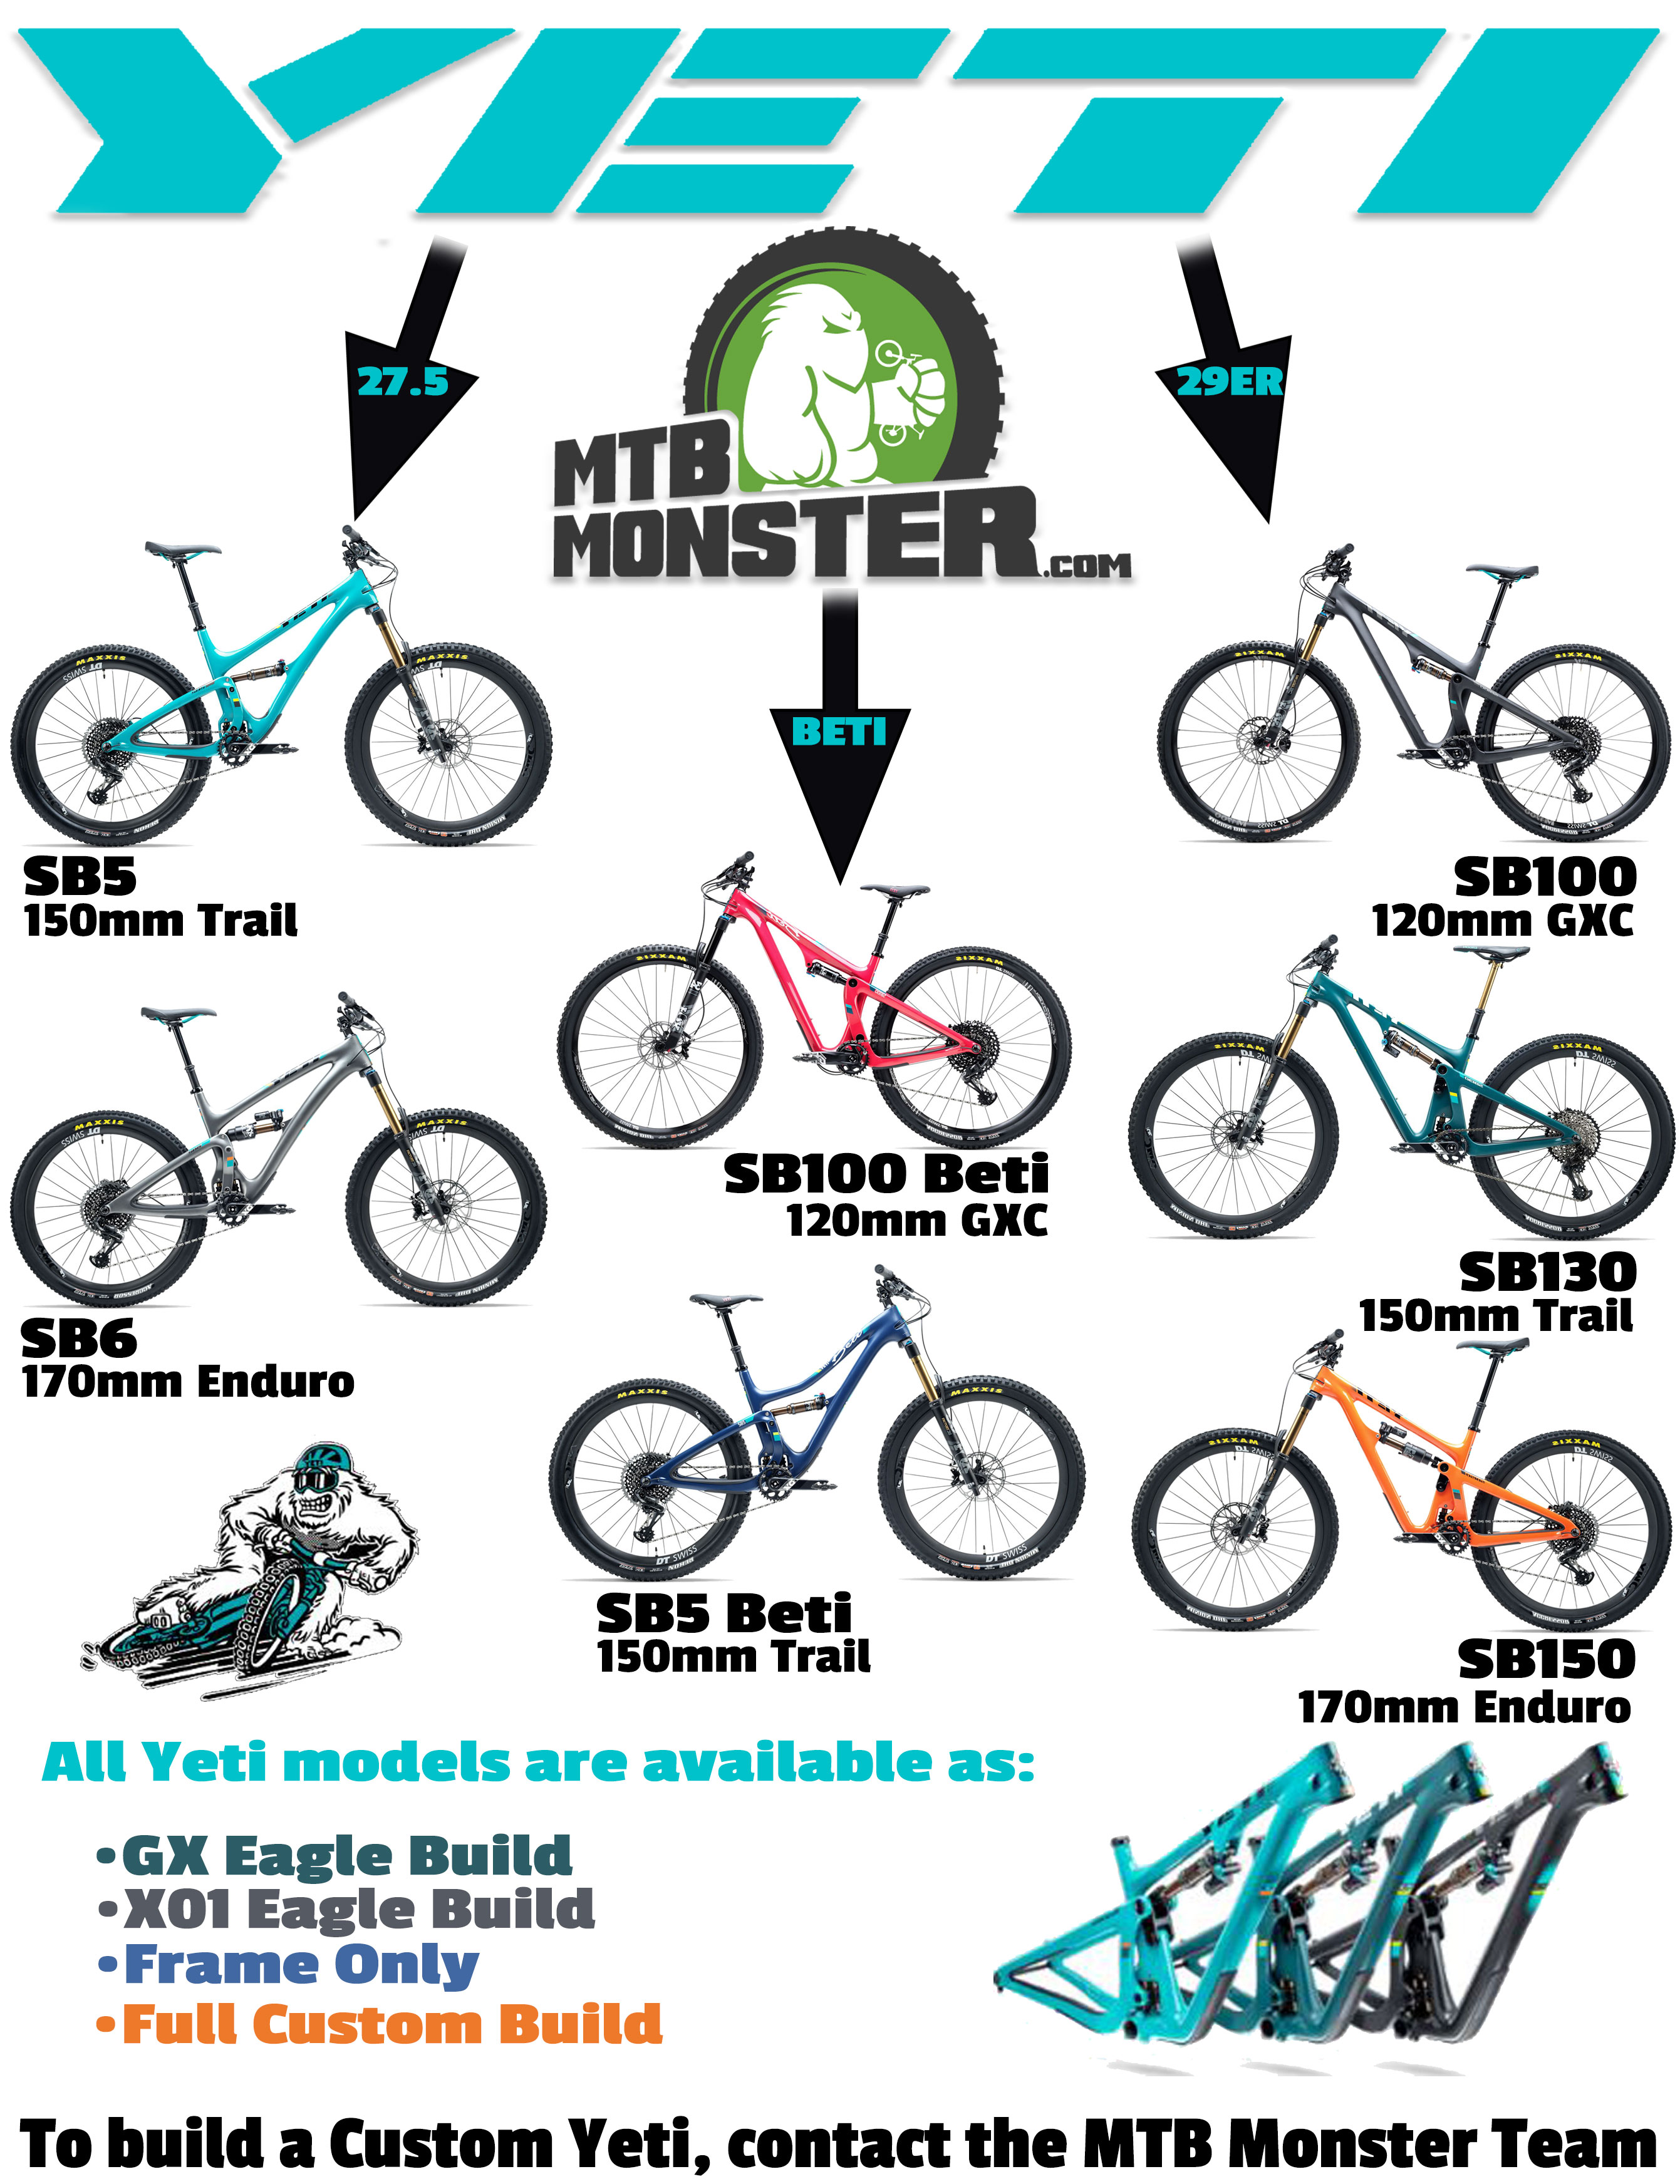 Yeti 2019 Mountain Bikes Difference in wheel size and suspension travel